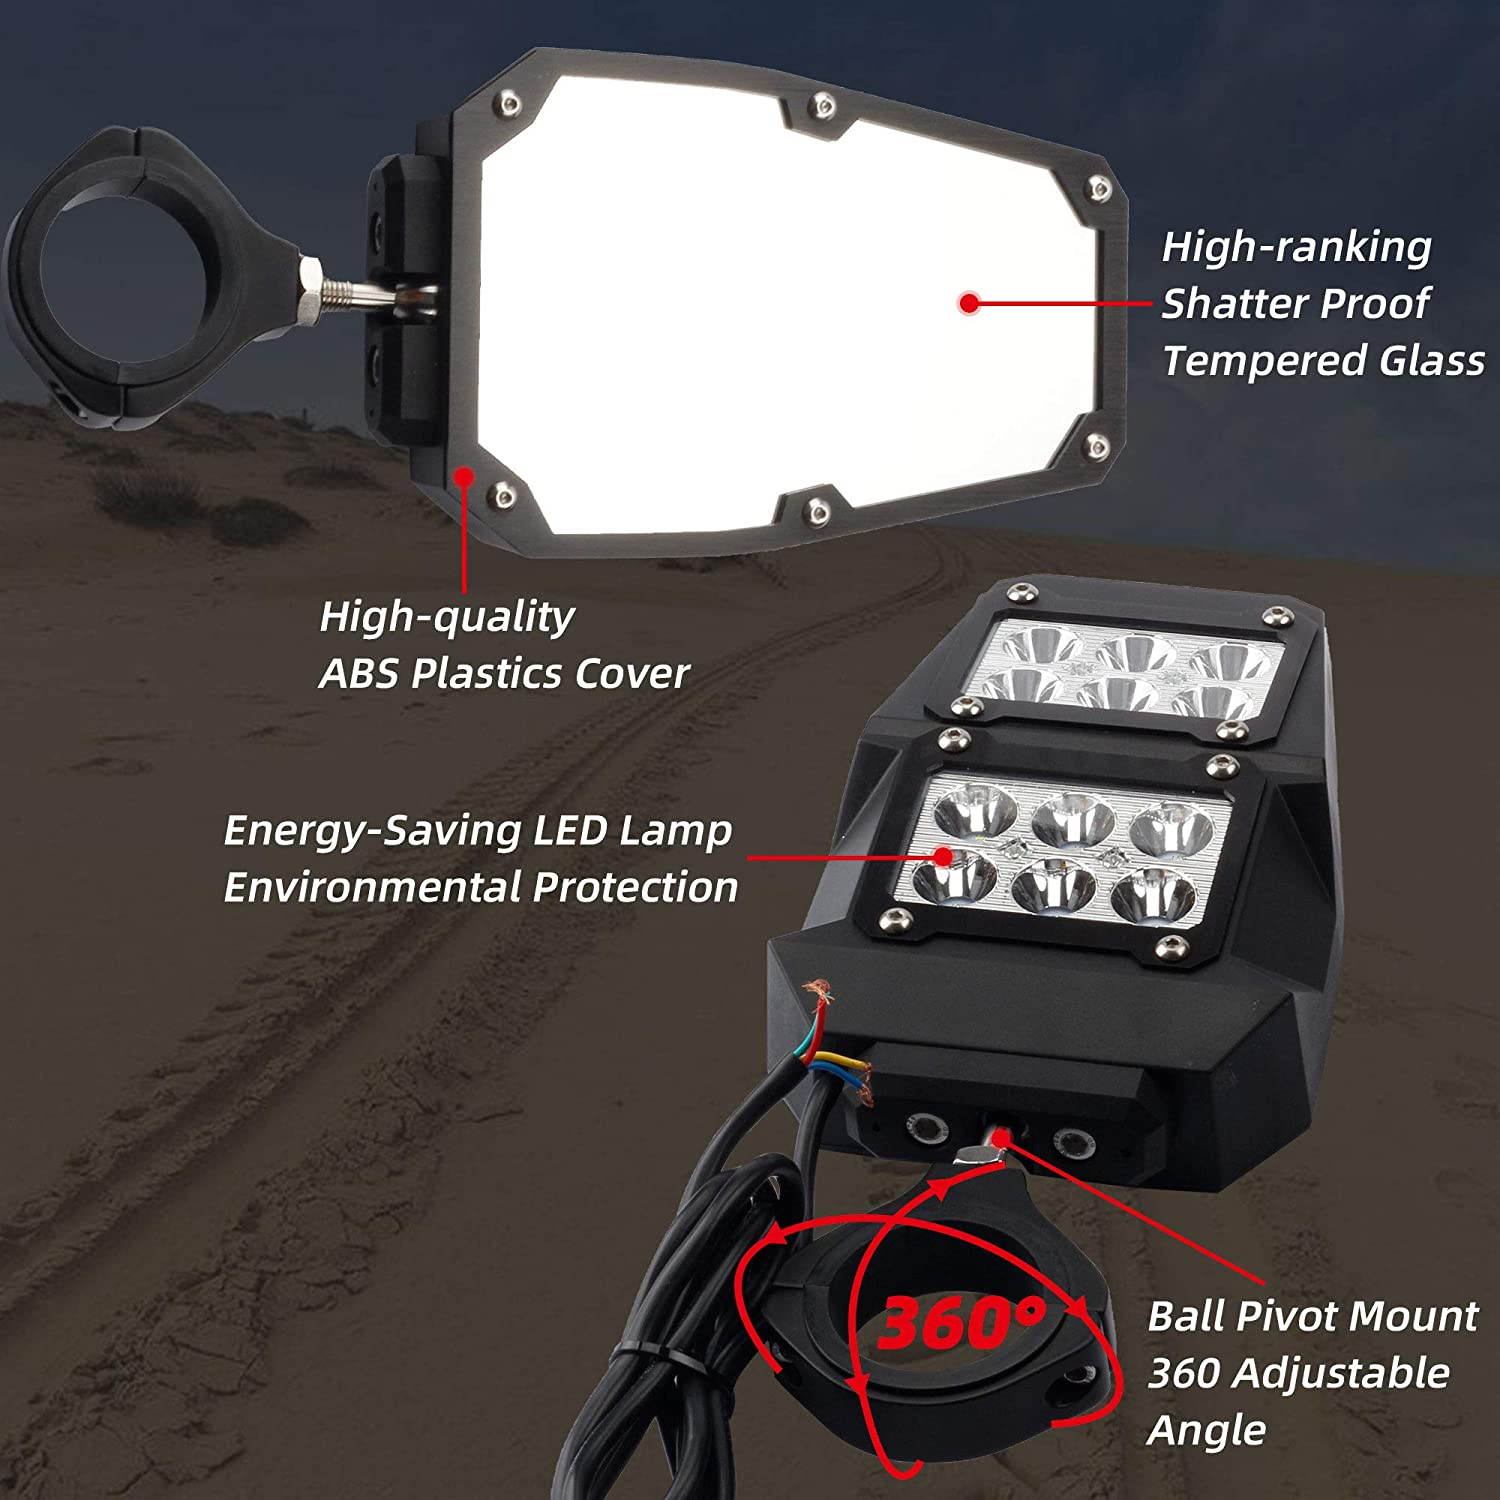 Dasbecan UTV Side Rear View Mirrors With LED Lamp Compatible With Almost All UTV With A 1.75-2 Diameter Round Tube Roll Cages